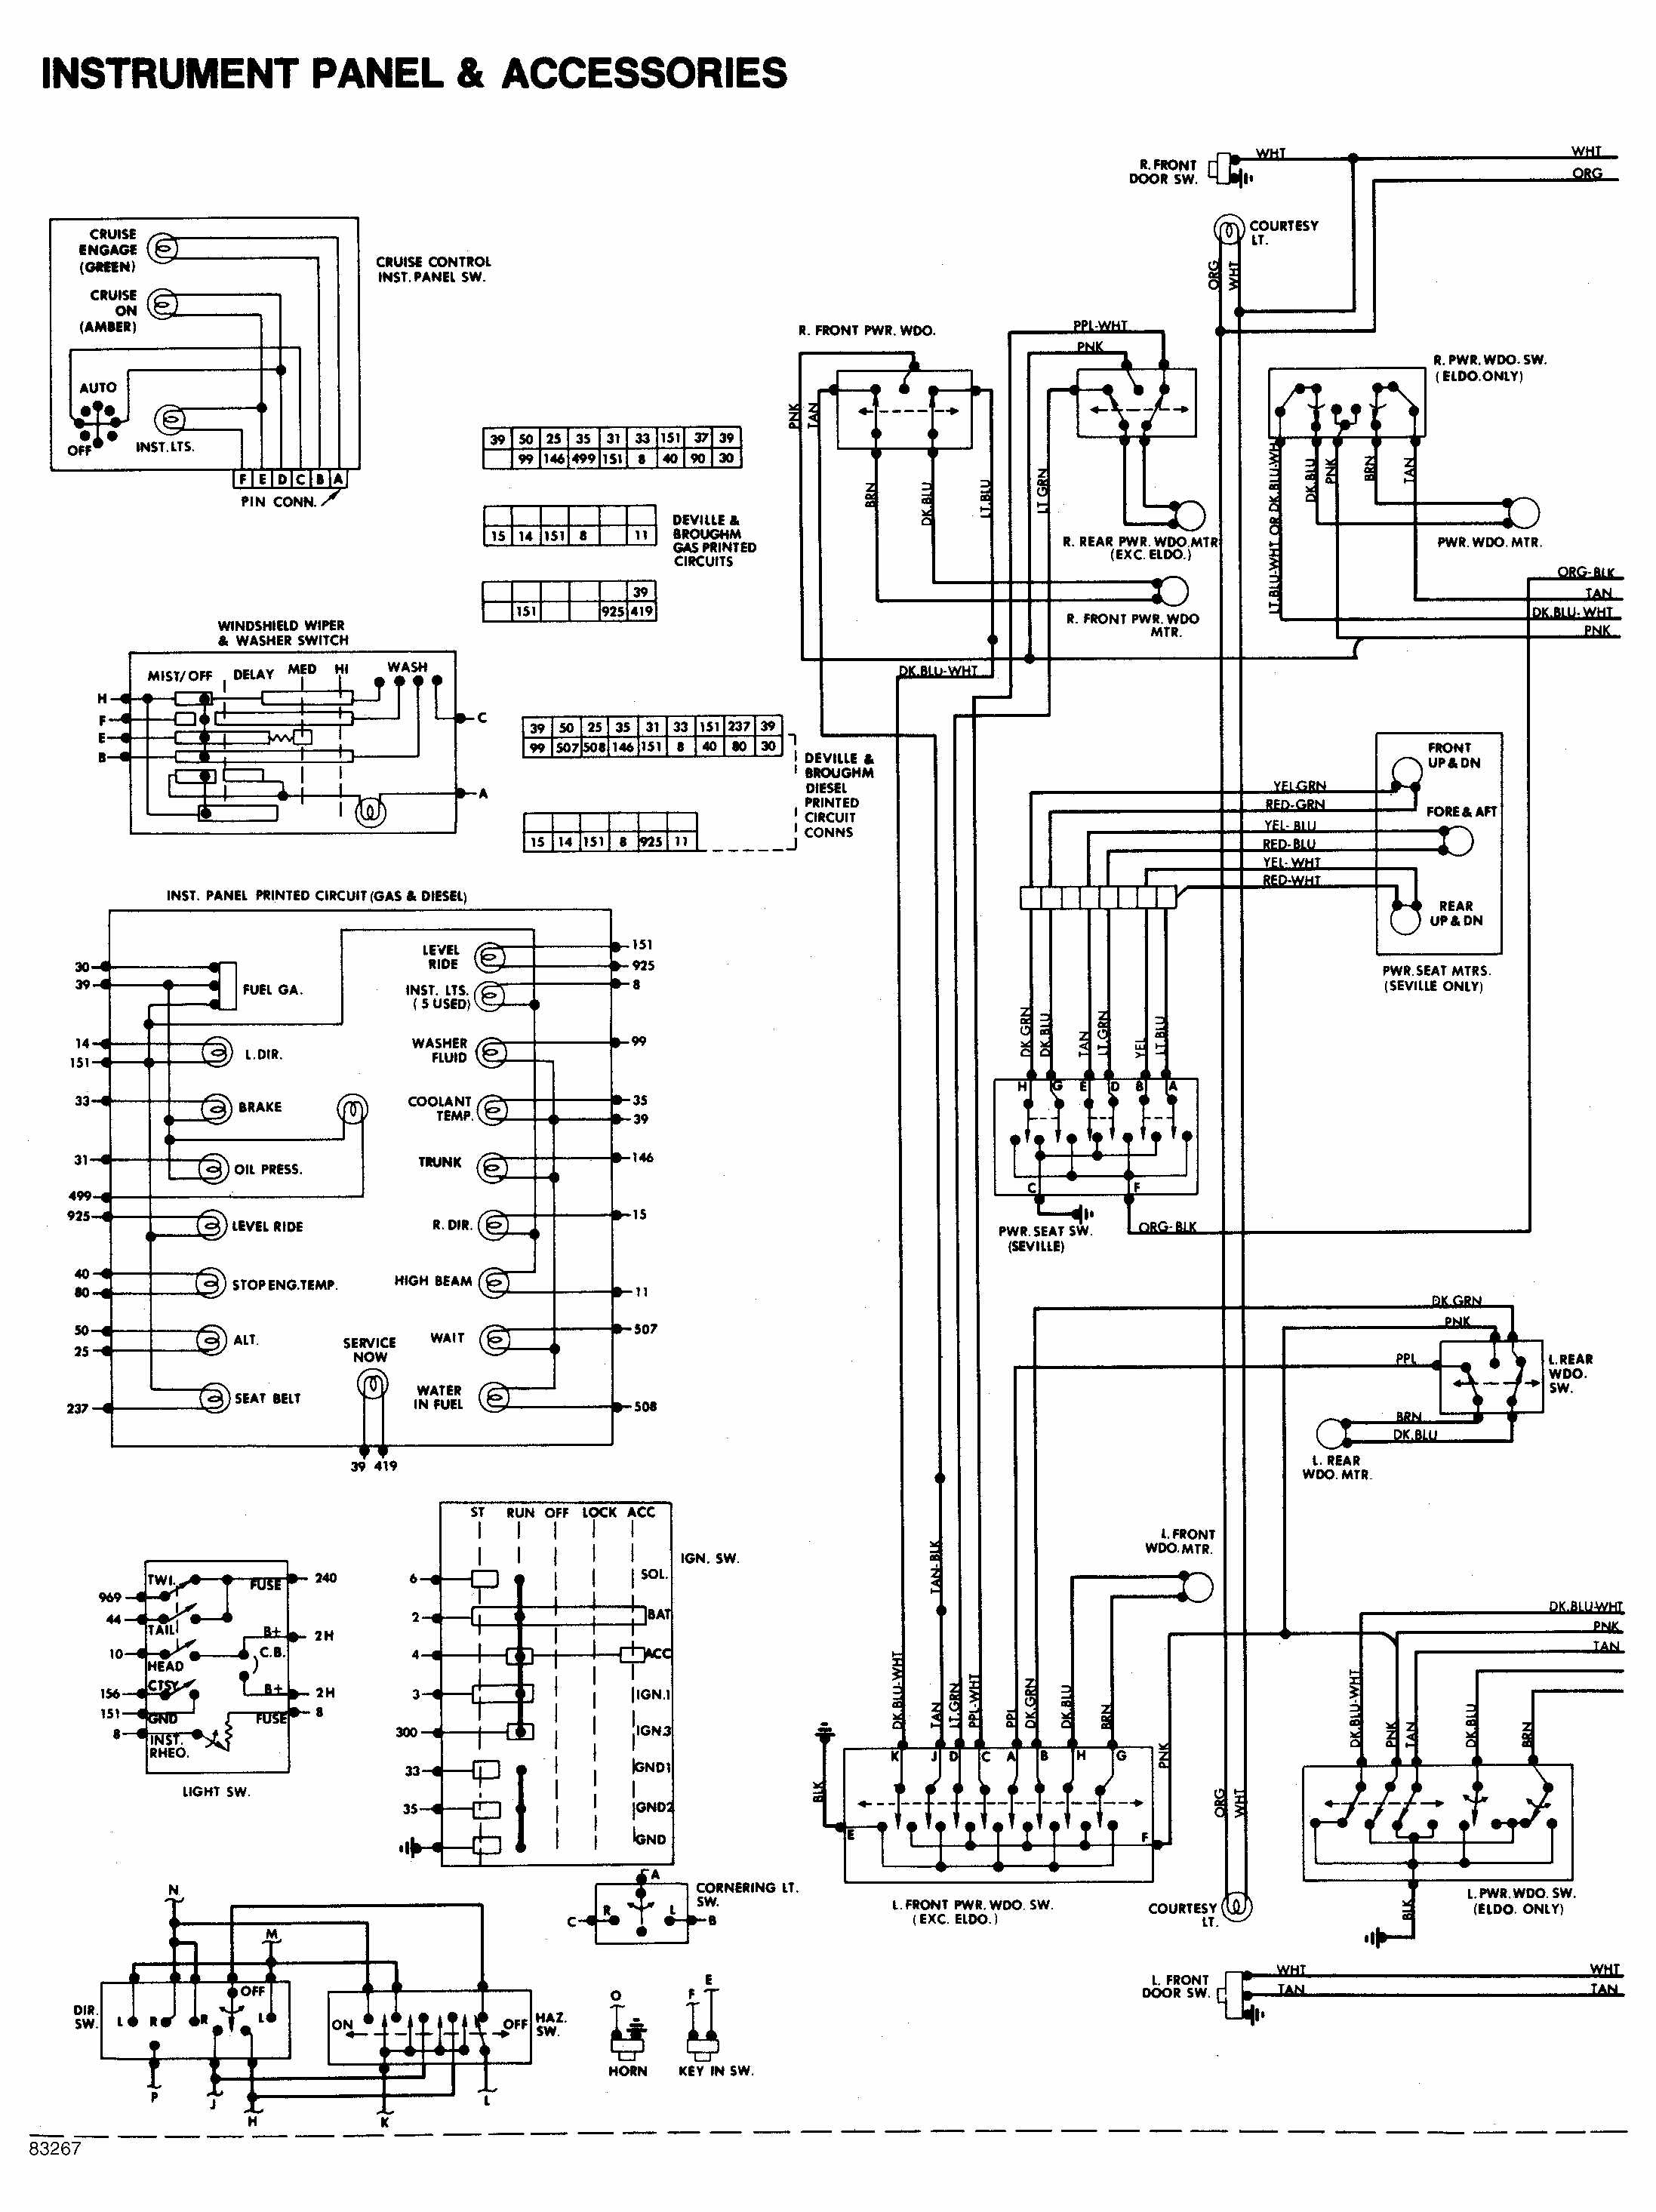 Instrument Panel And Accessories Wiring Diagram Of Cadillac Deville on 1967 mustang ignition wire colors